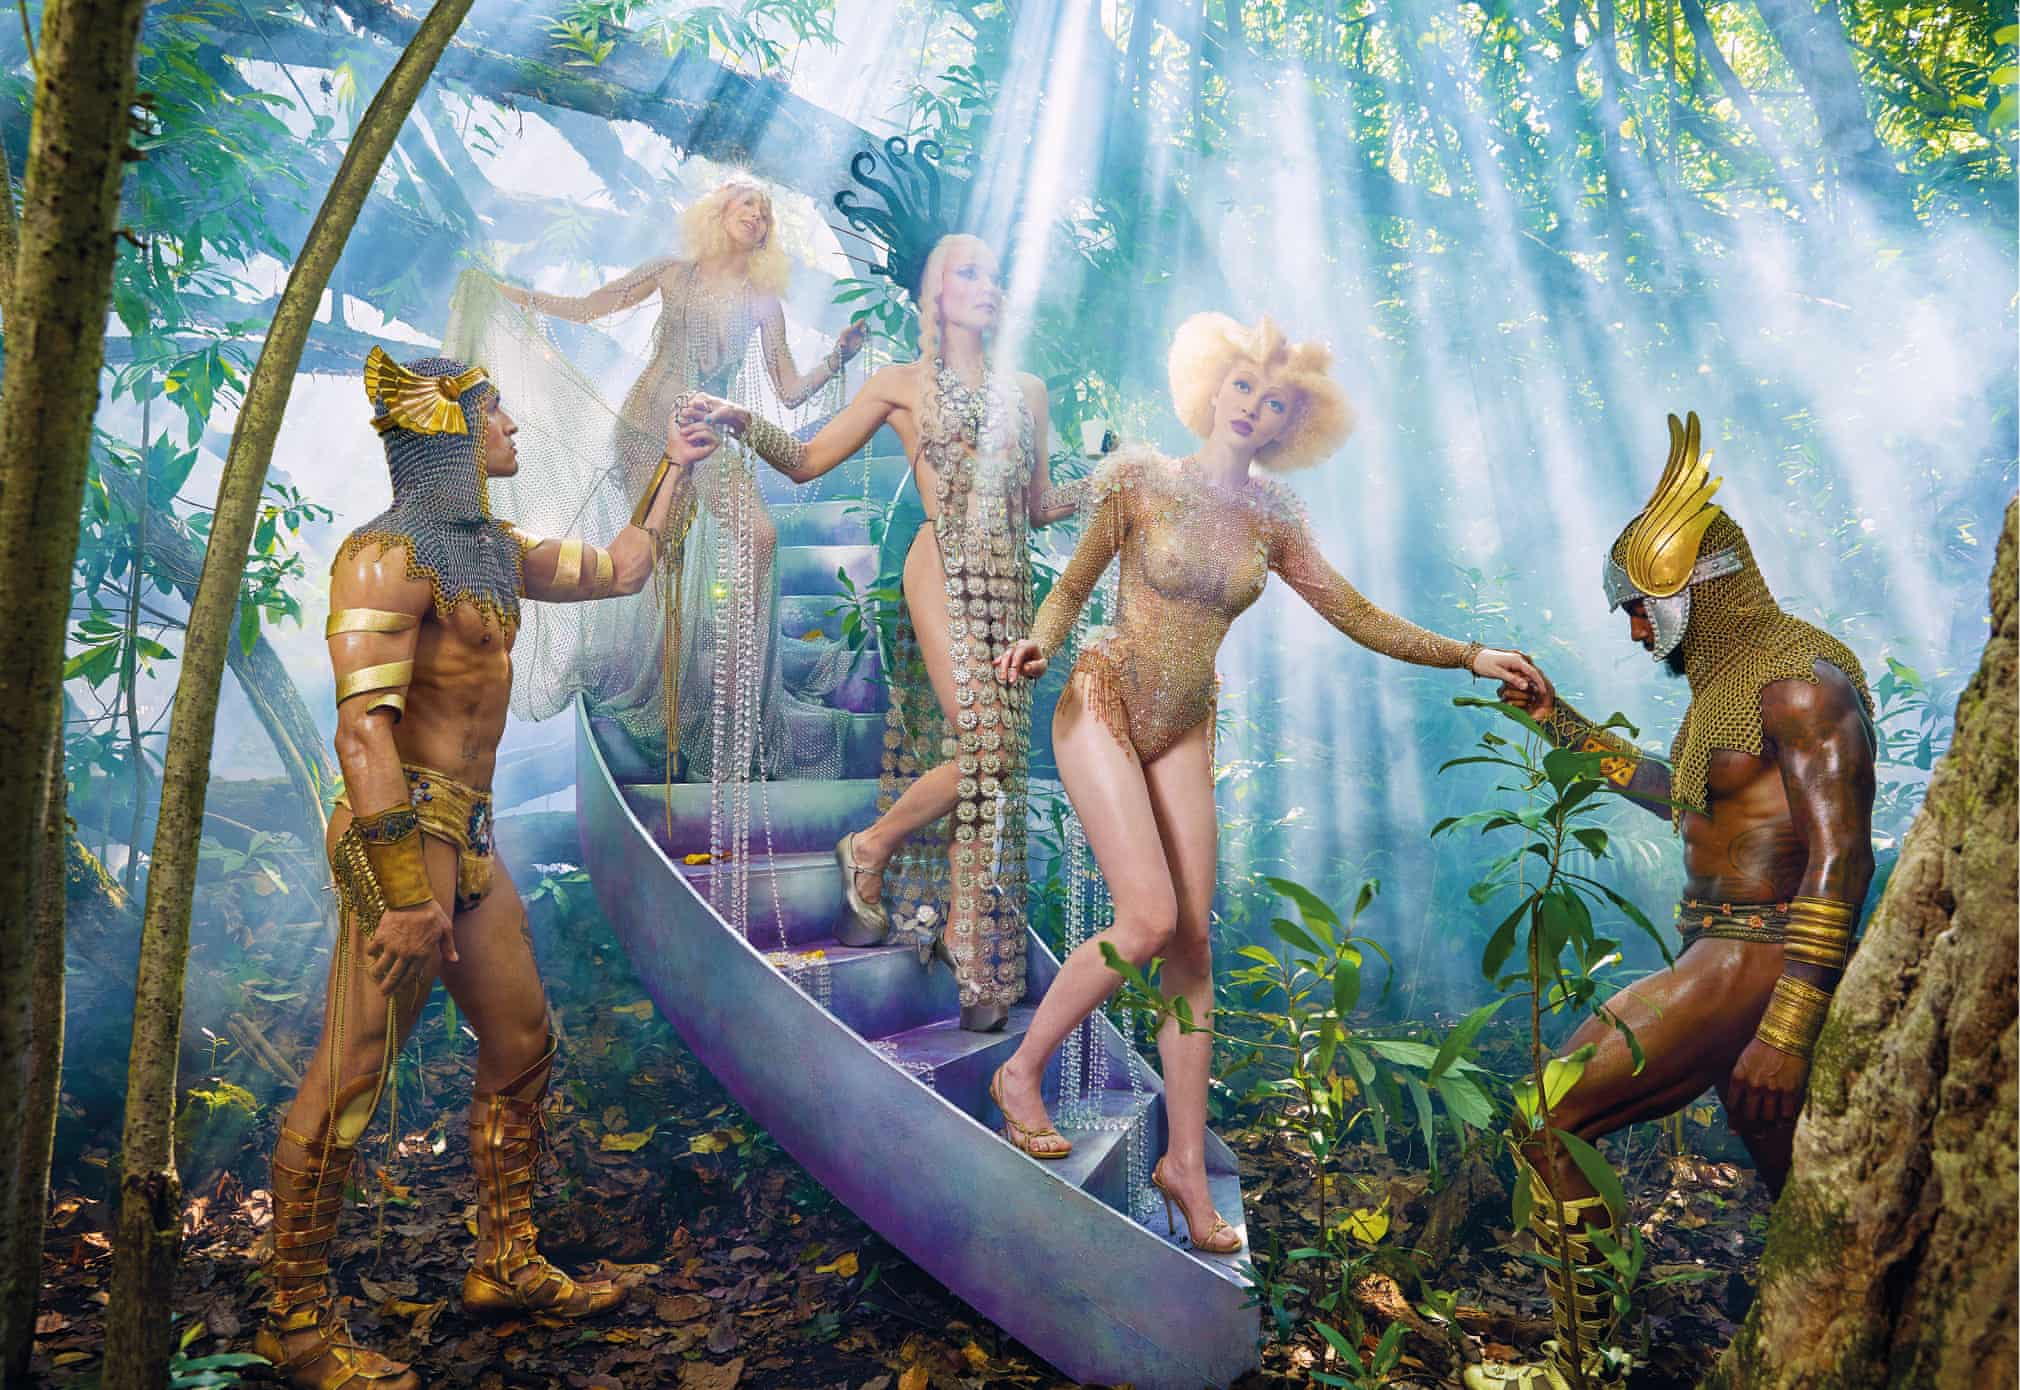 lavazza-x-david-lachapelle-2020-calendar-7